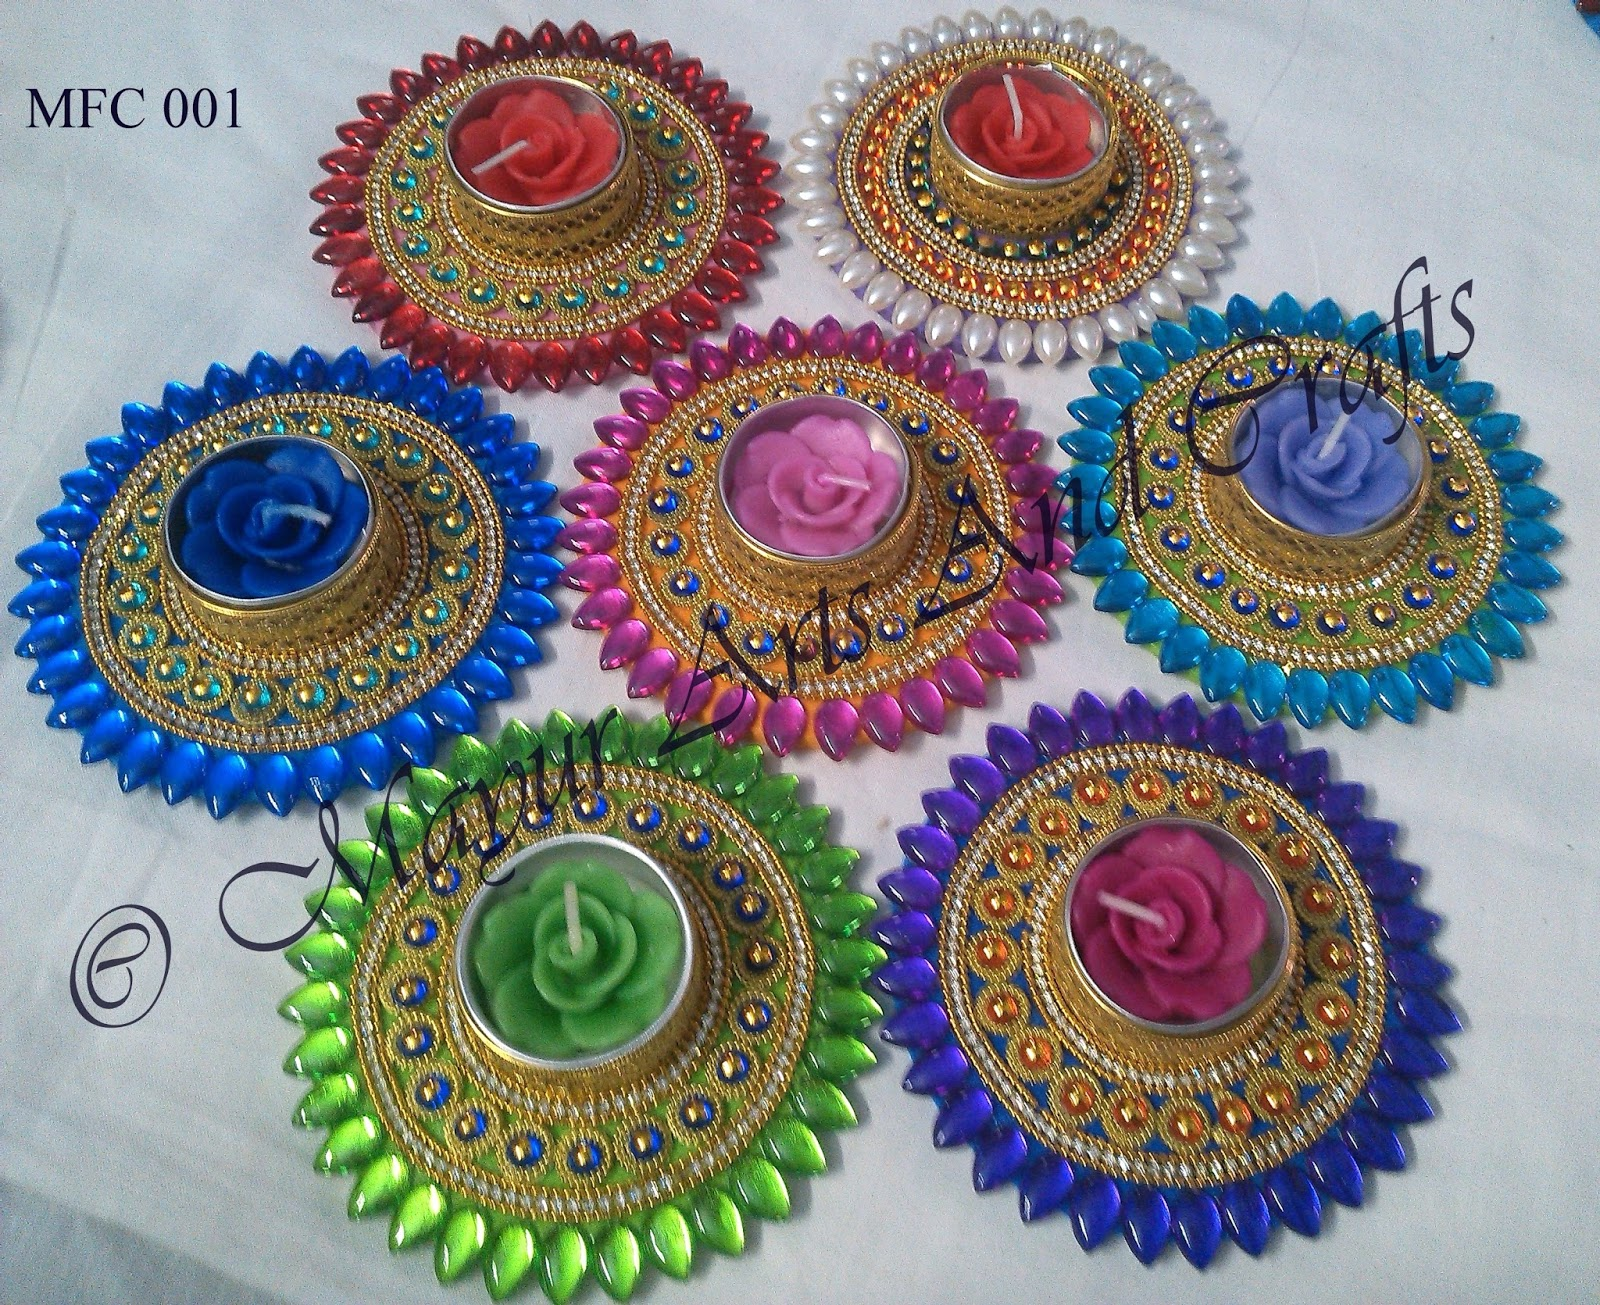 Mayur arts crafts 5 1 16 6 1 16 - Gruhapravesam gifts ideas ...